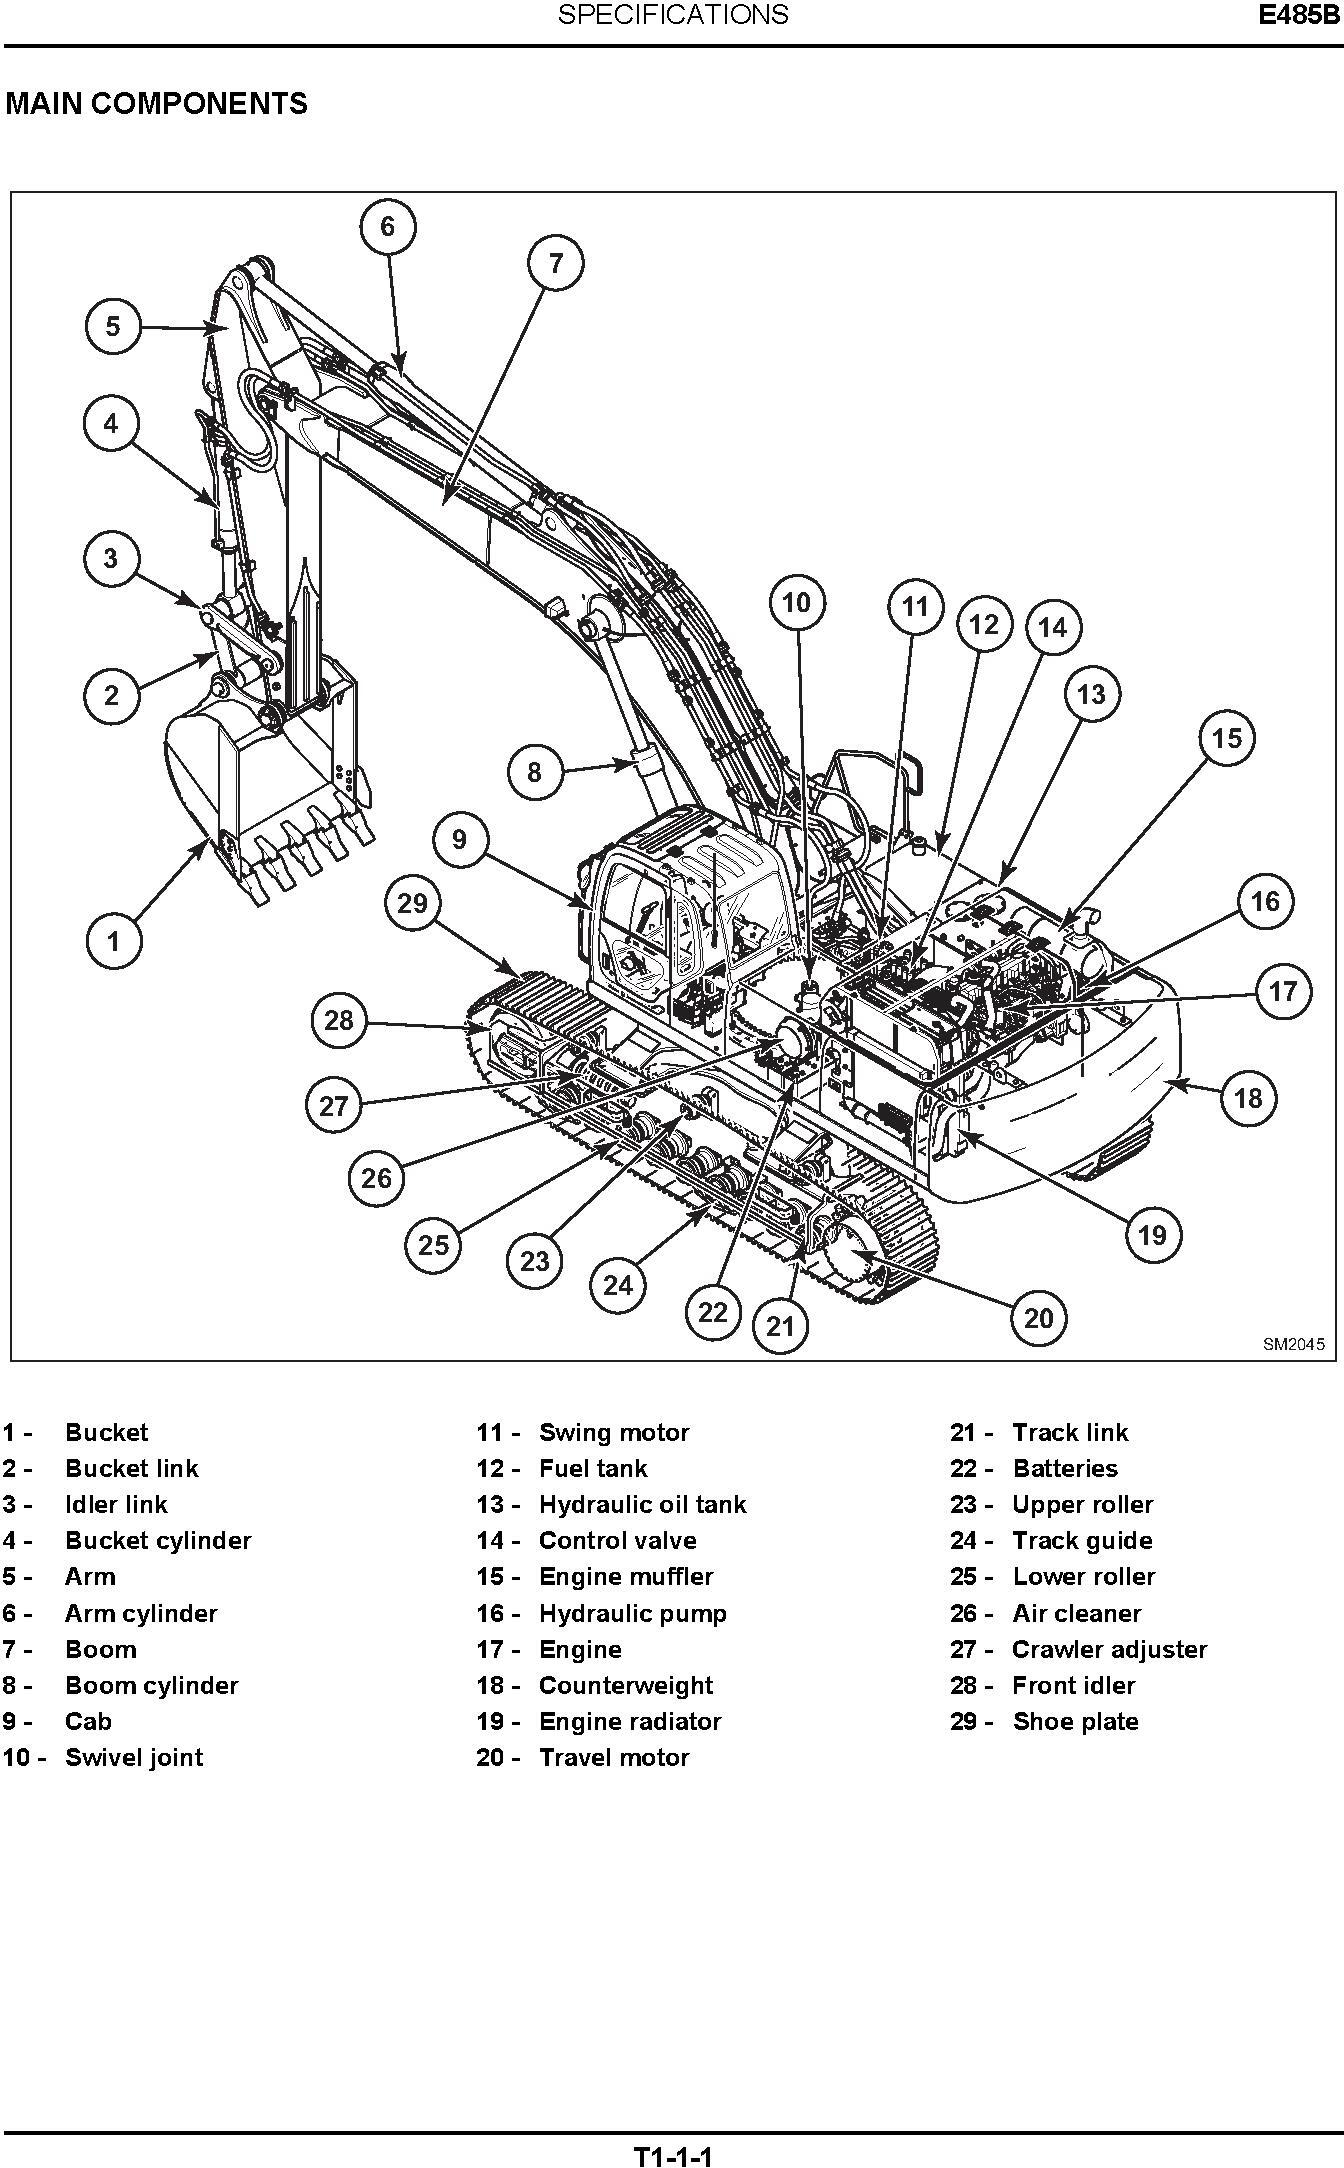 New Holland E485B Crawler Excavator Service Manual - 1